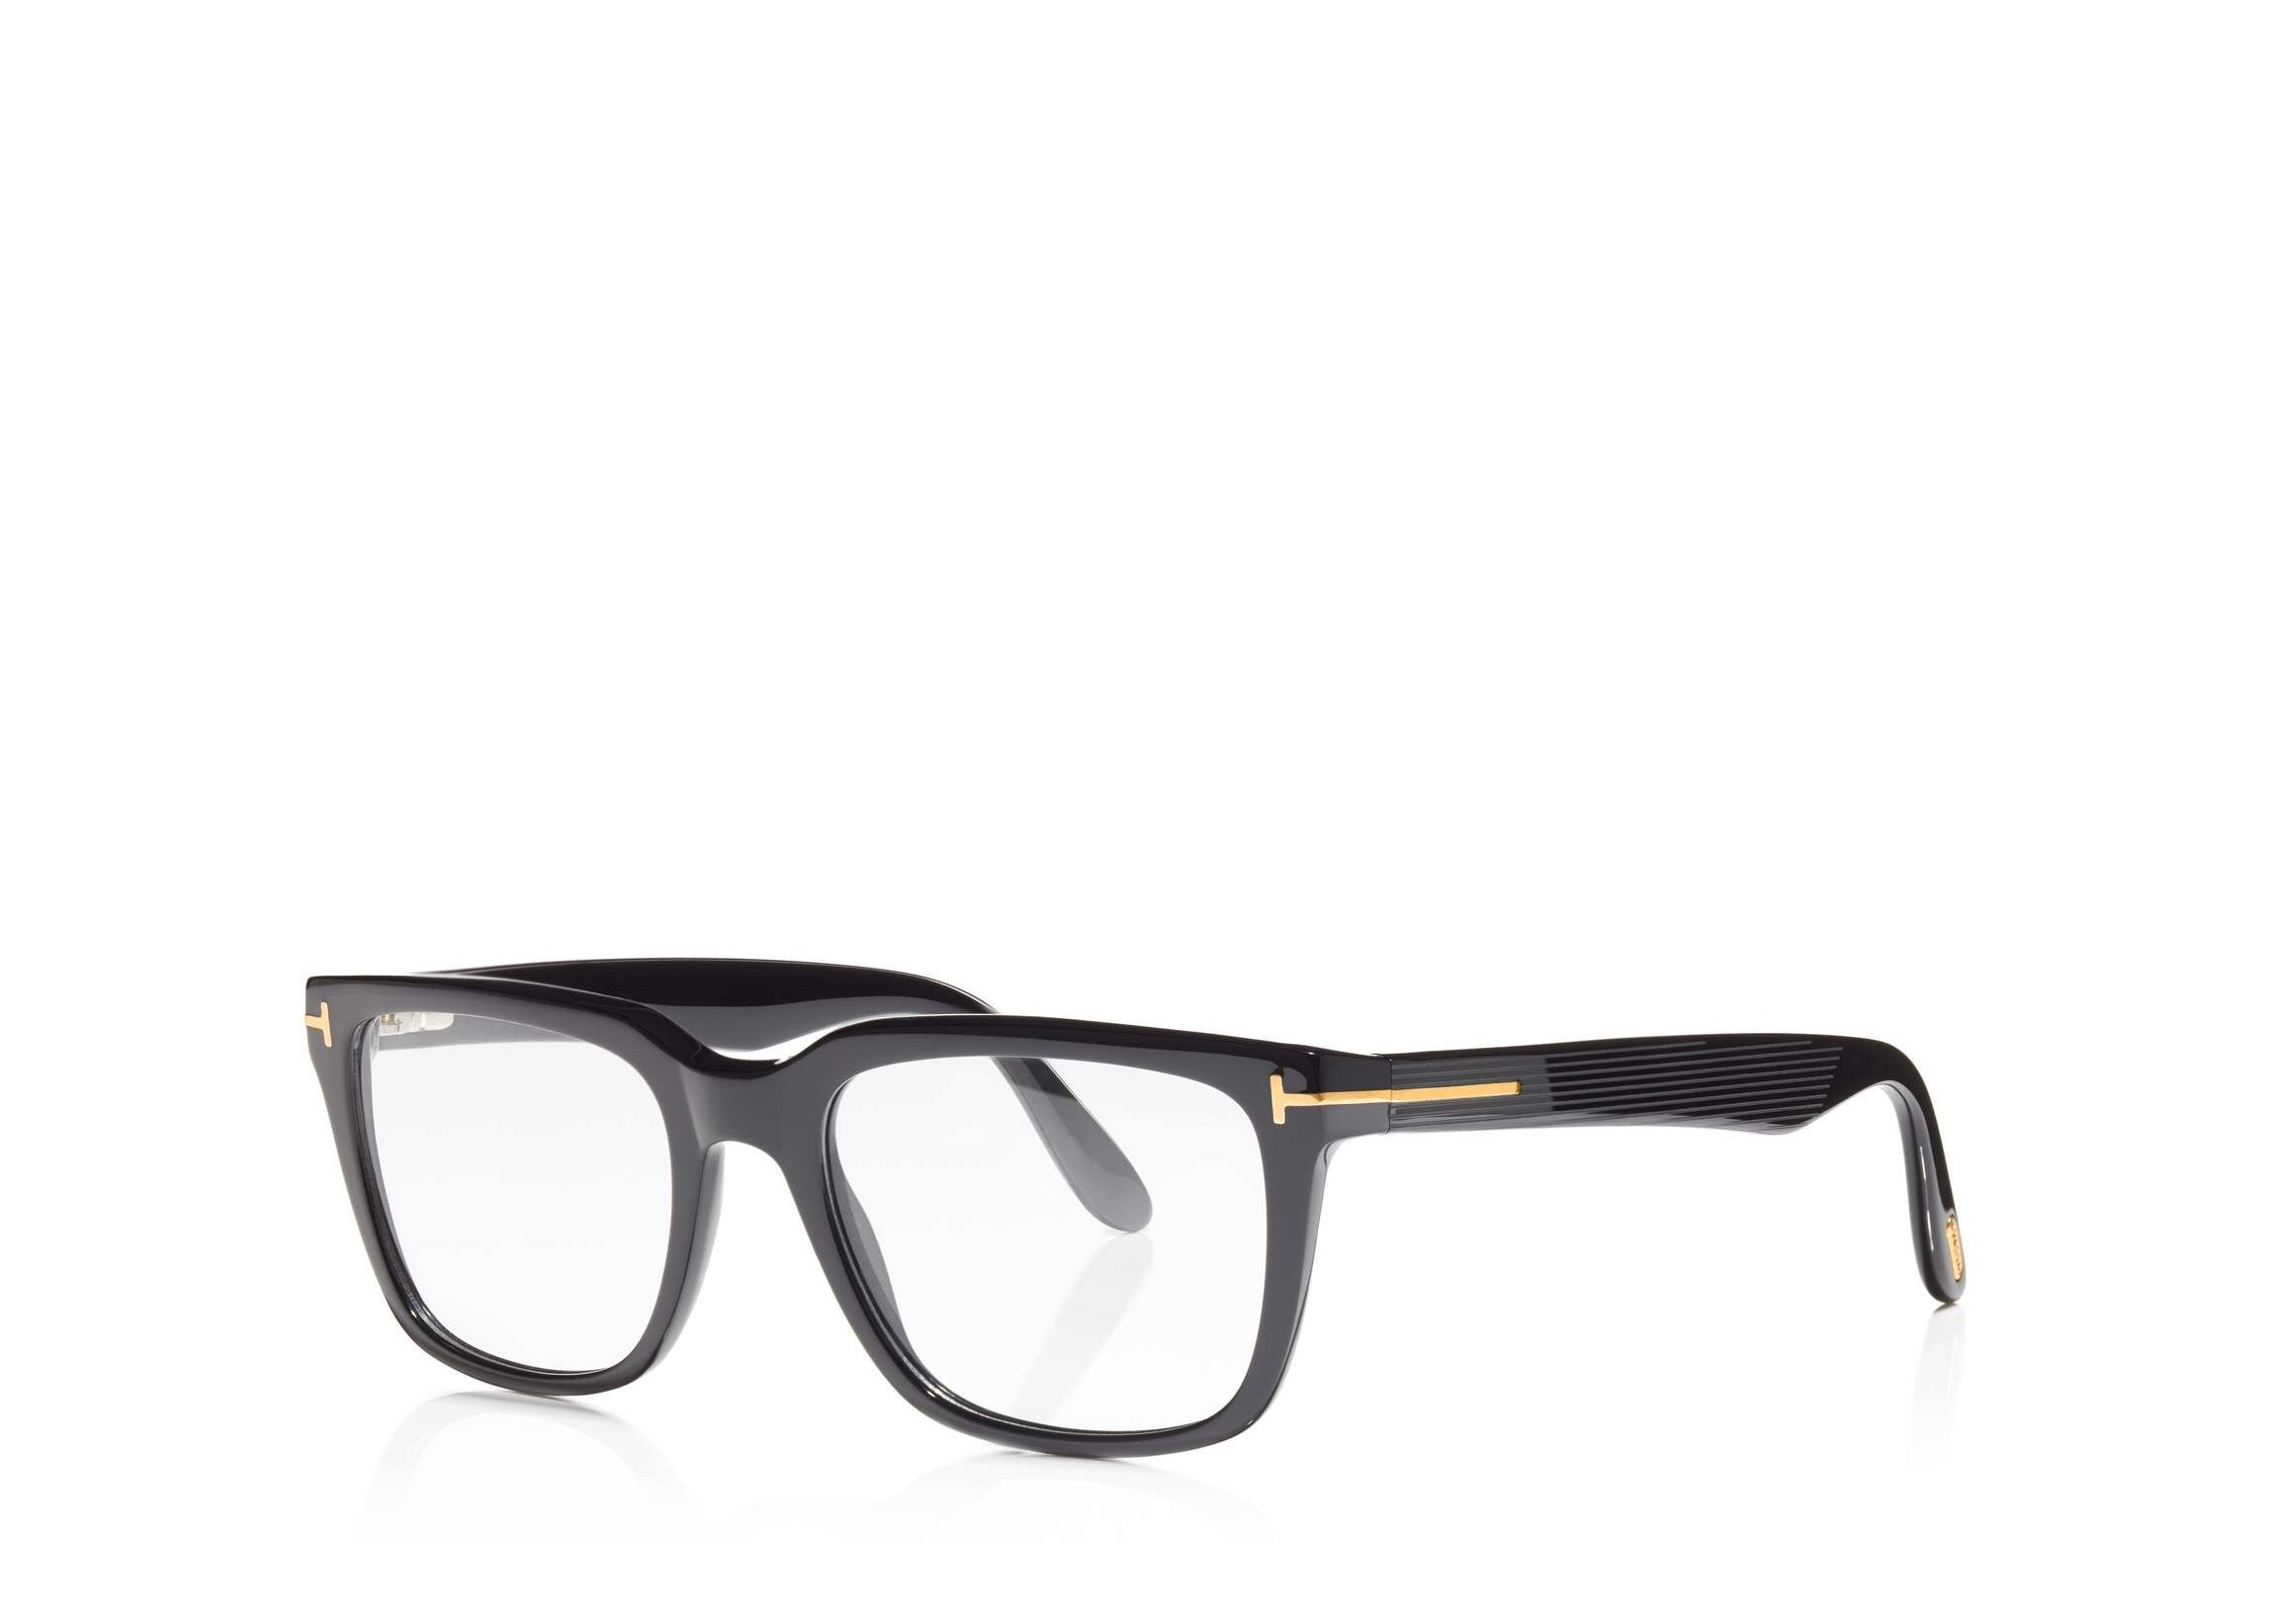 dd89b55c95 ... 6468962906 TOM FORD FT 5304 MEN S BLACK SQUARE-FRAME OPTICAL GLASSES